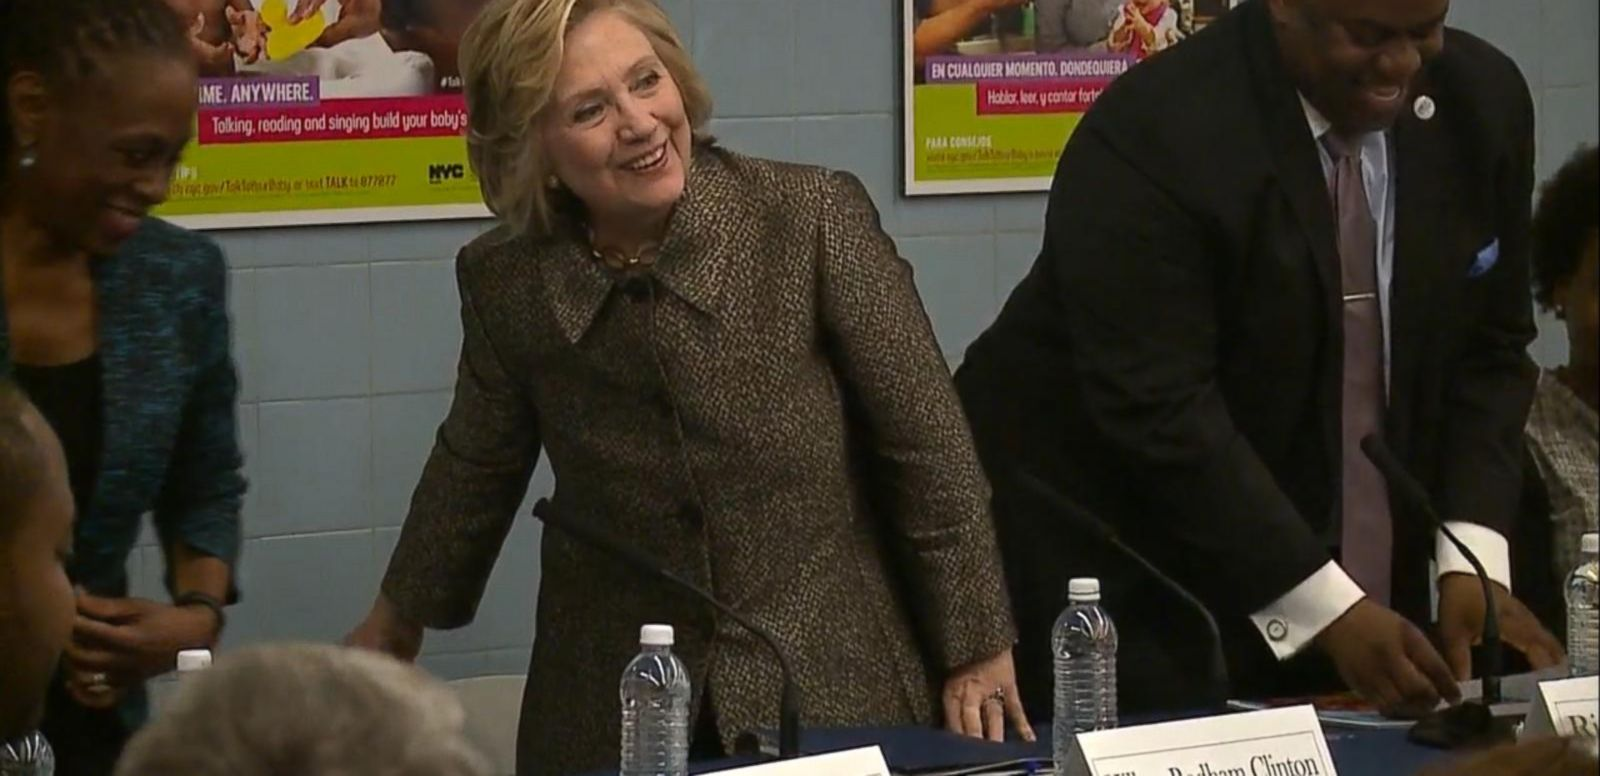 VIDEO: Hillary Clinton Hints at 2016 Run: 'All in Good Time' Going Back to Brooklyn